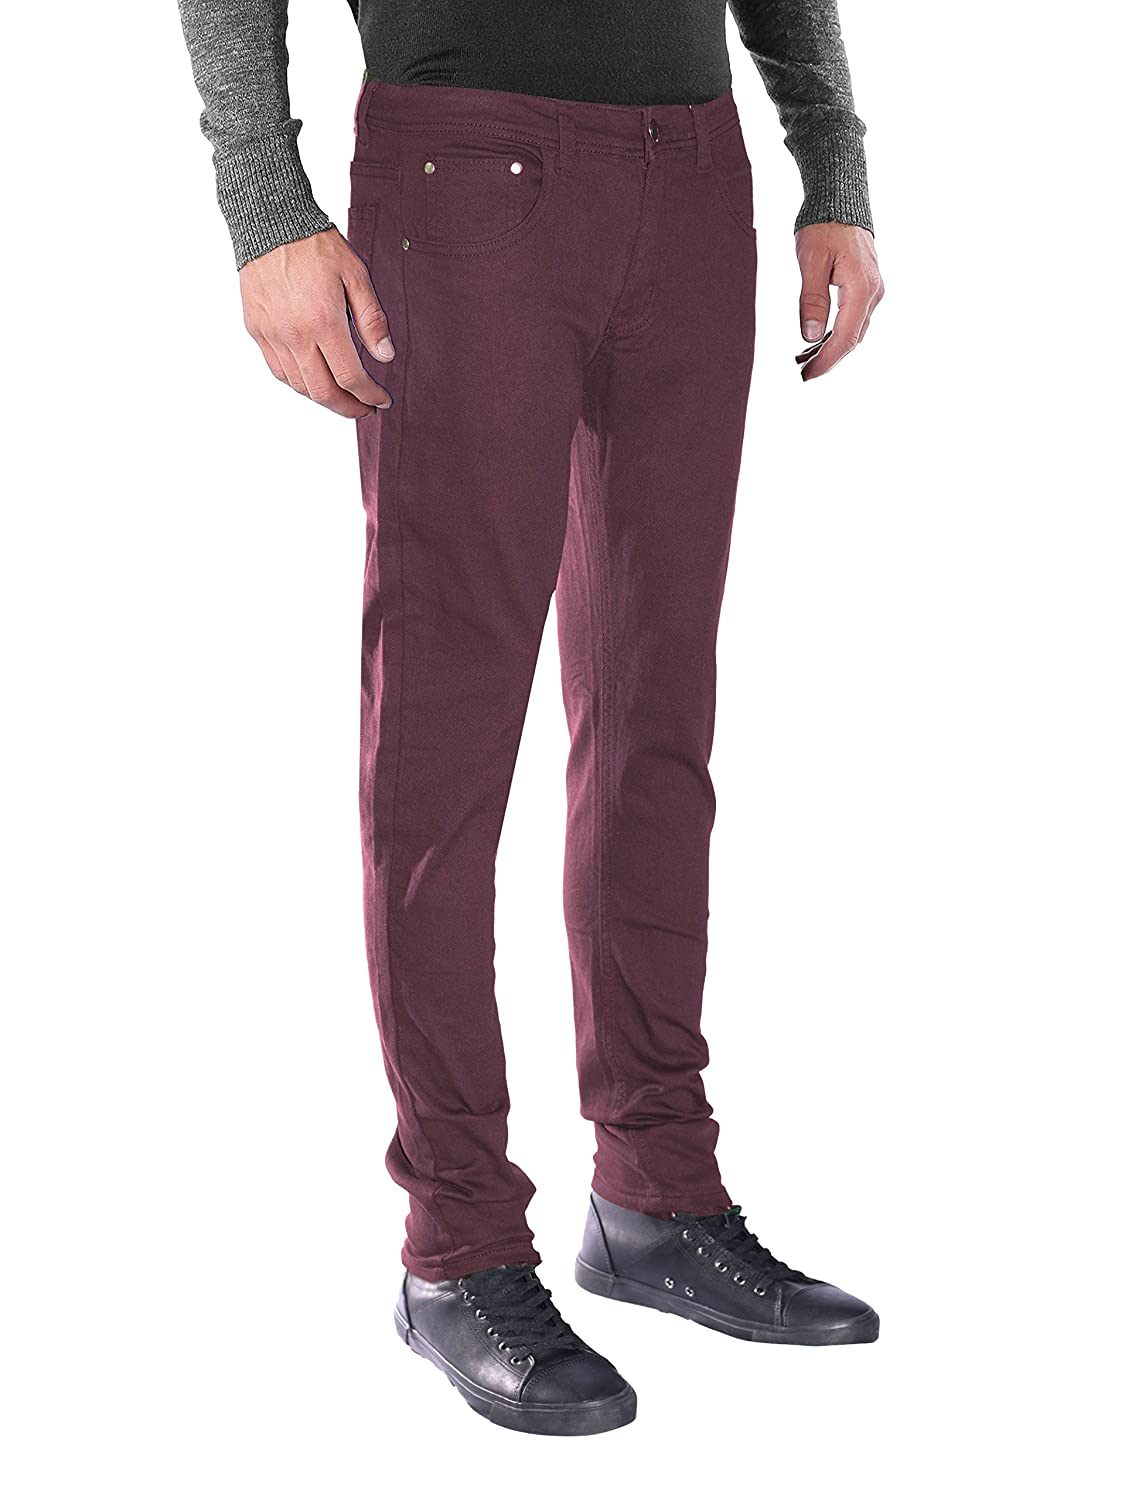 1f672d6f841b SOFT & COMFORTABLE: Made with twill cotton blend fabric, our mens twill  pants are made to provide you with unmatched comfort throughout the day.